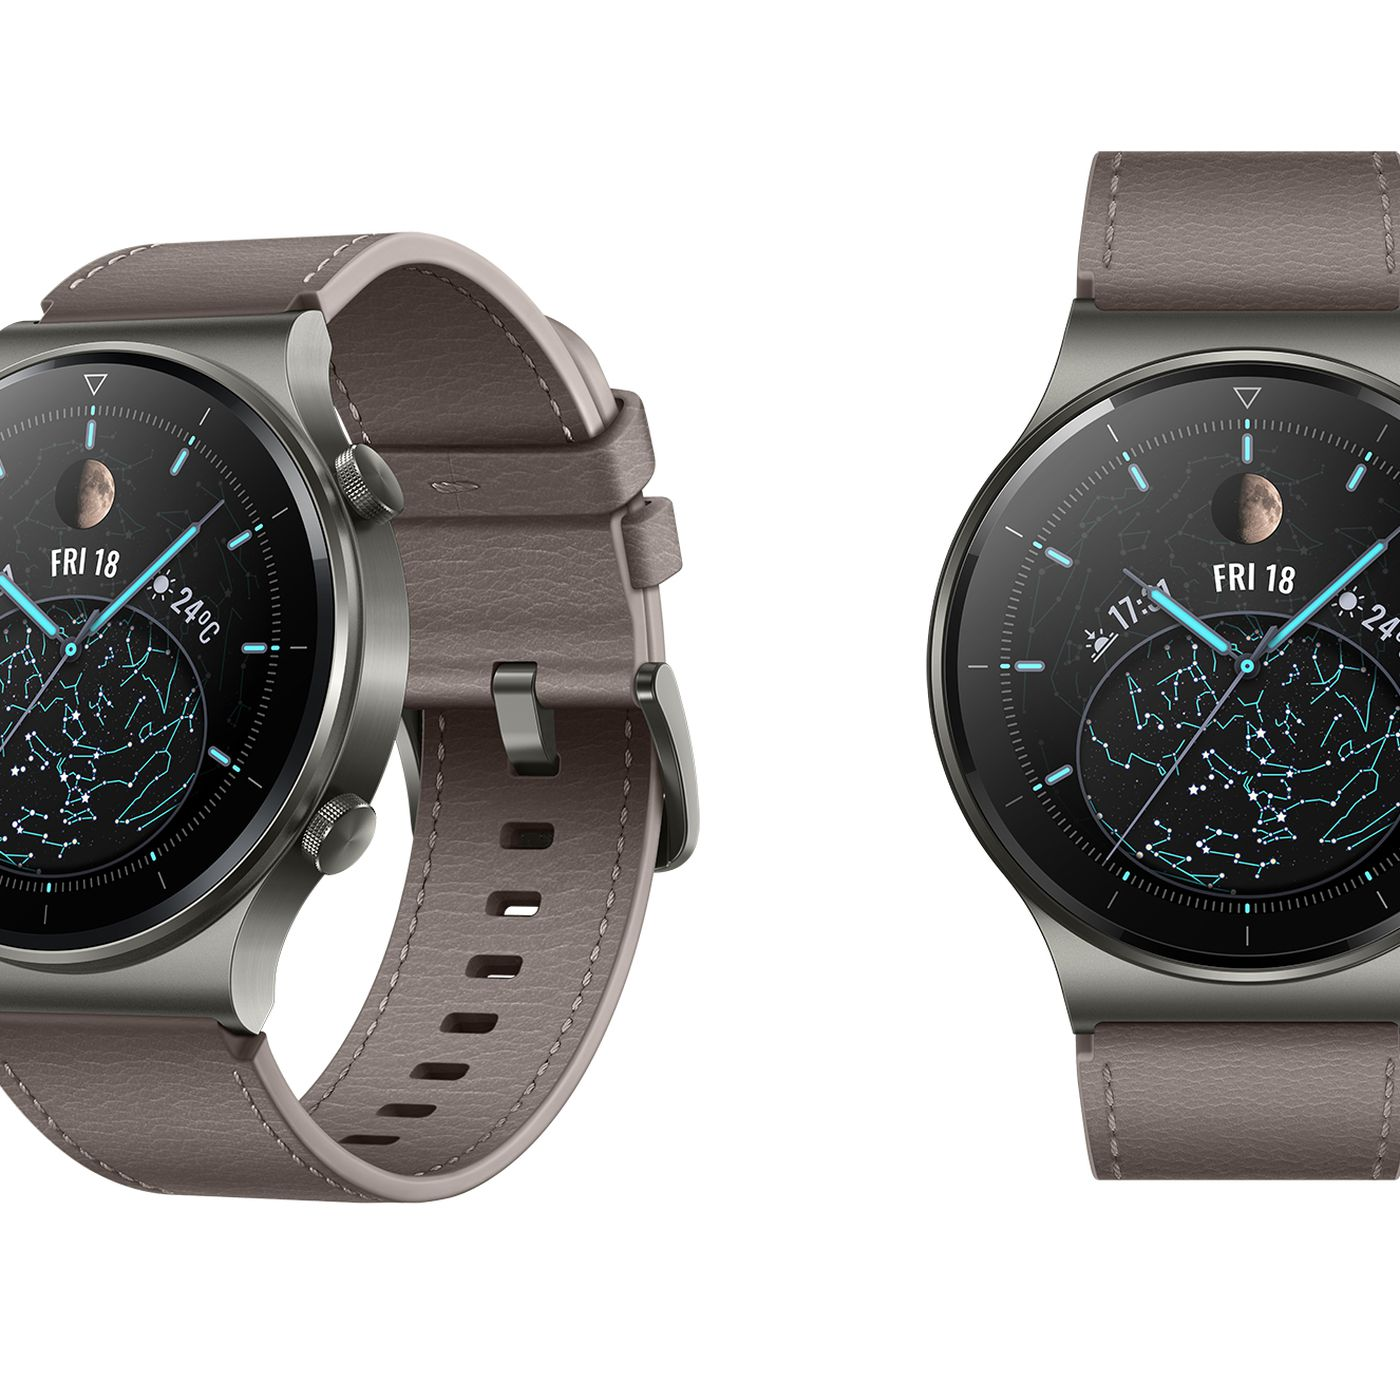 Huawei Adds Qi Wireless Charging To Its Watch Gt 2 Pro Smartwatch The Verge